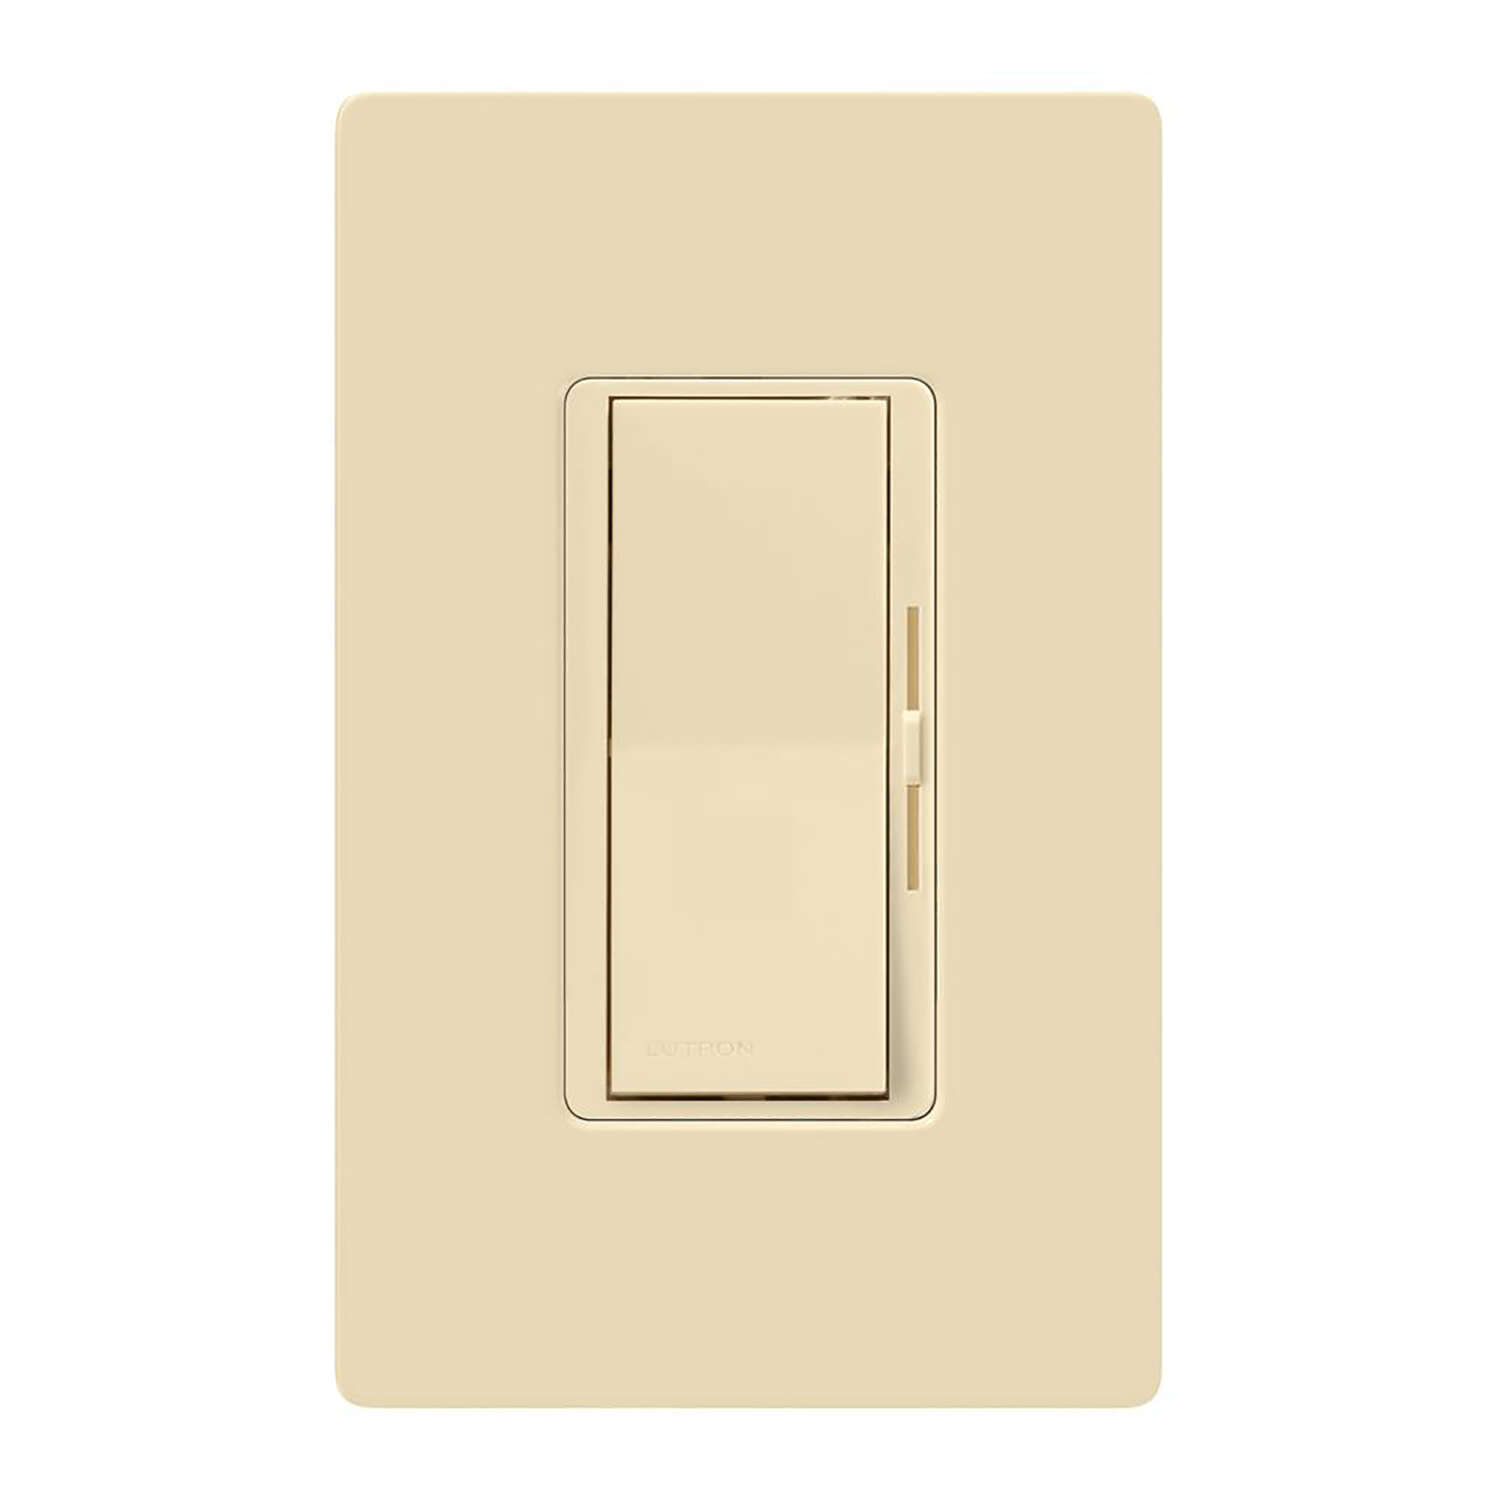 Lutron Diva Ivory 150 watt 3-Way Dimmer Switch 1 pk